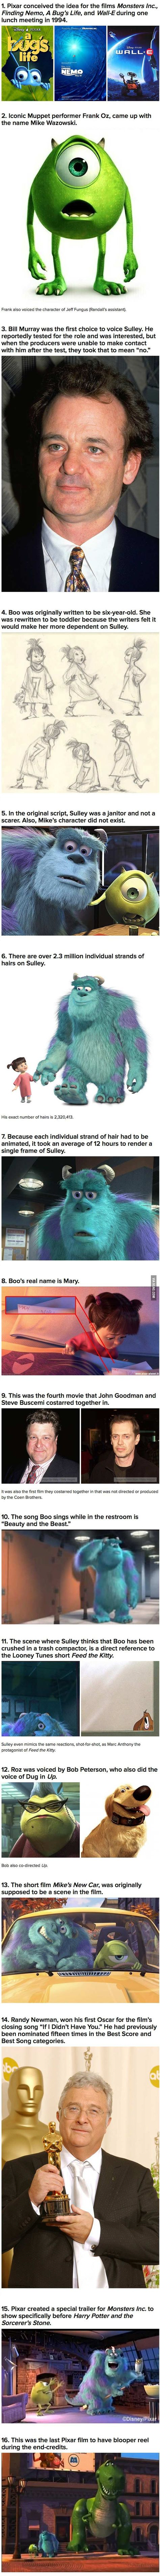 16 Things You Might Not Know About Monsters Inc. They should totally bring back the bloopers in the credits though. That was one of the best parts of watching a Disney Pixar film. Disney And Dreamworks, Disney Pixar, Walt Disney, Disney Songs, Disney Facts, Disney Memes, Funny Disney, Monsters Inc, Disney Love